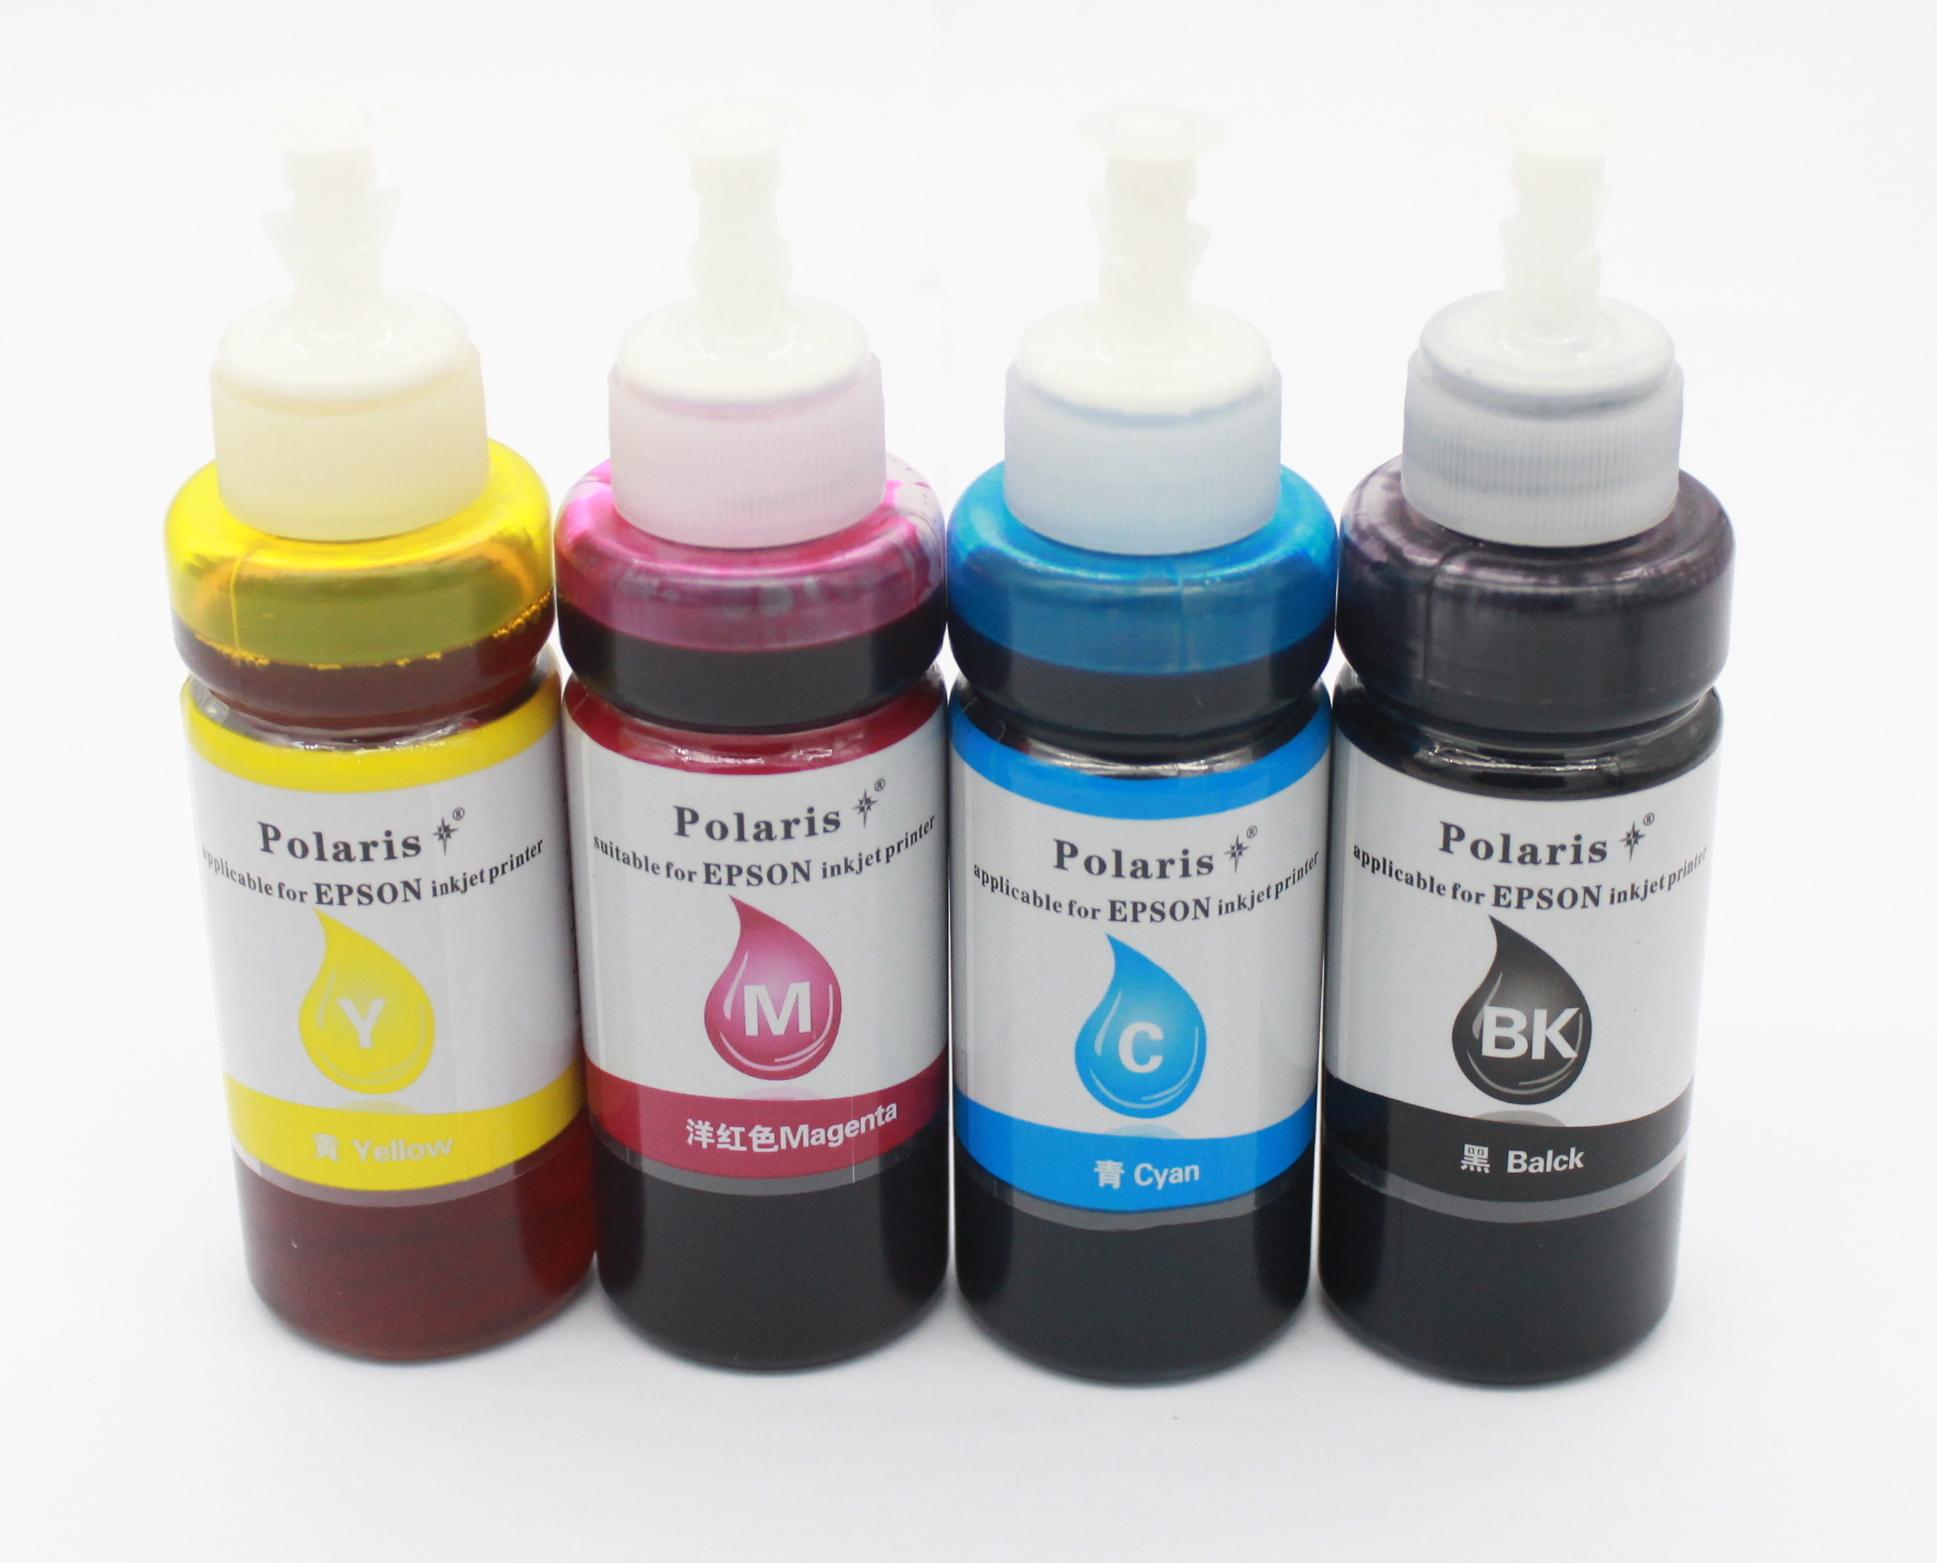 Epson Dye Ink 100ml Bottle ( Set Of 4 Black, Magenta,yellow And Cyan ) For Epson L100/l110/l120/l200/l210/l220/l300/l350/l355/l360/l361/l365/l380/l385/l455/l485/l550/l555/l565/l405/l1300 By Nellys Store.